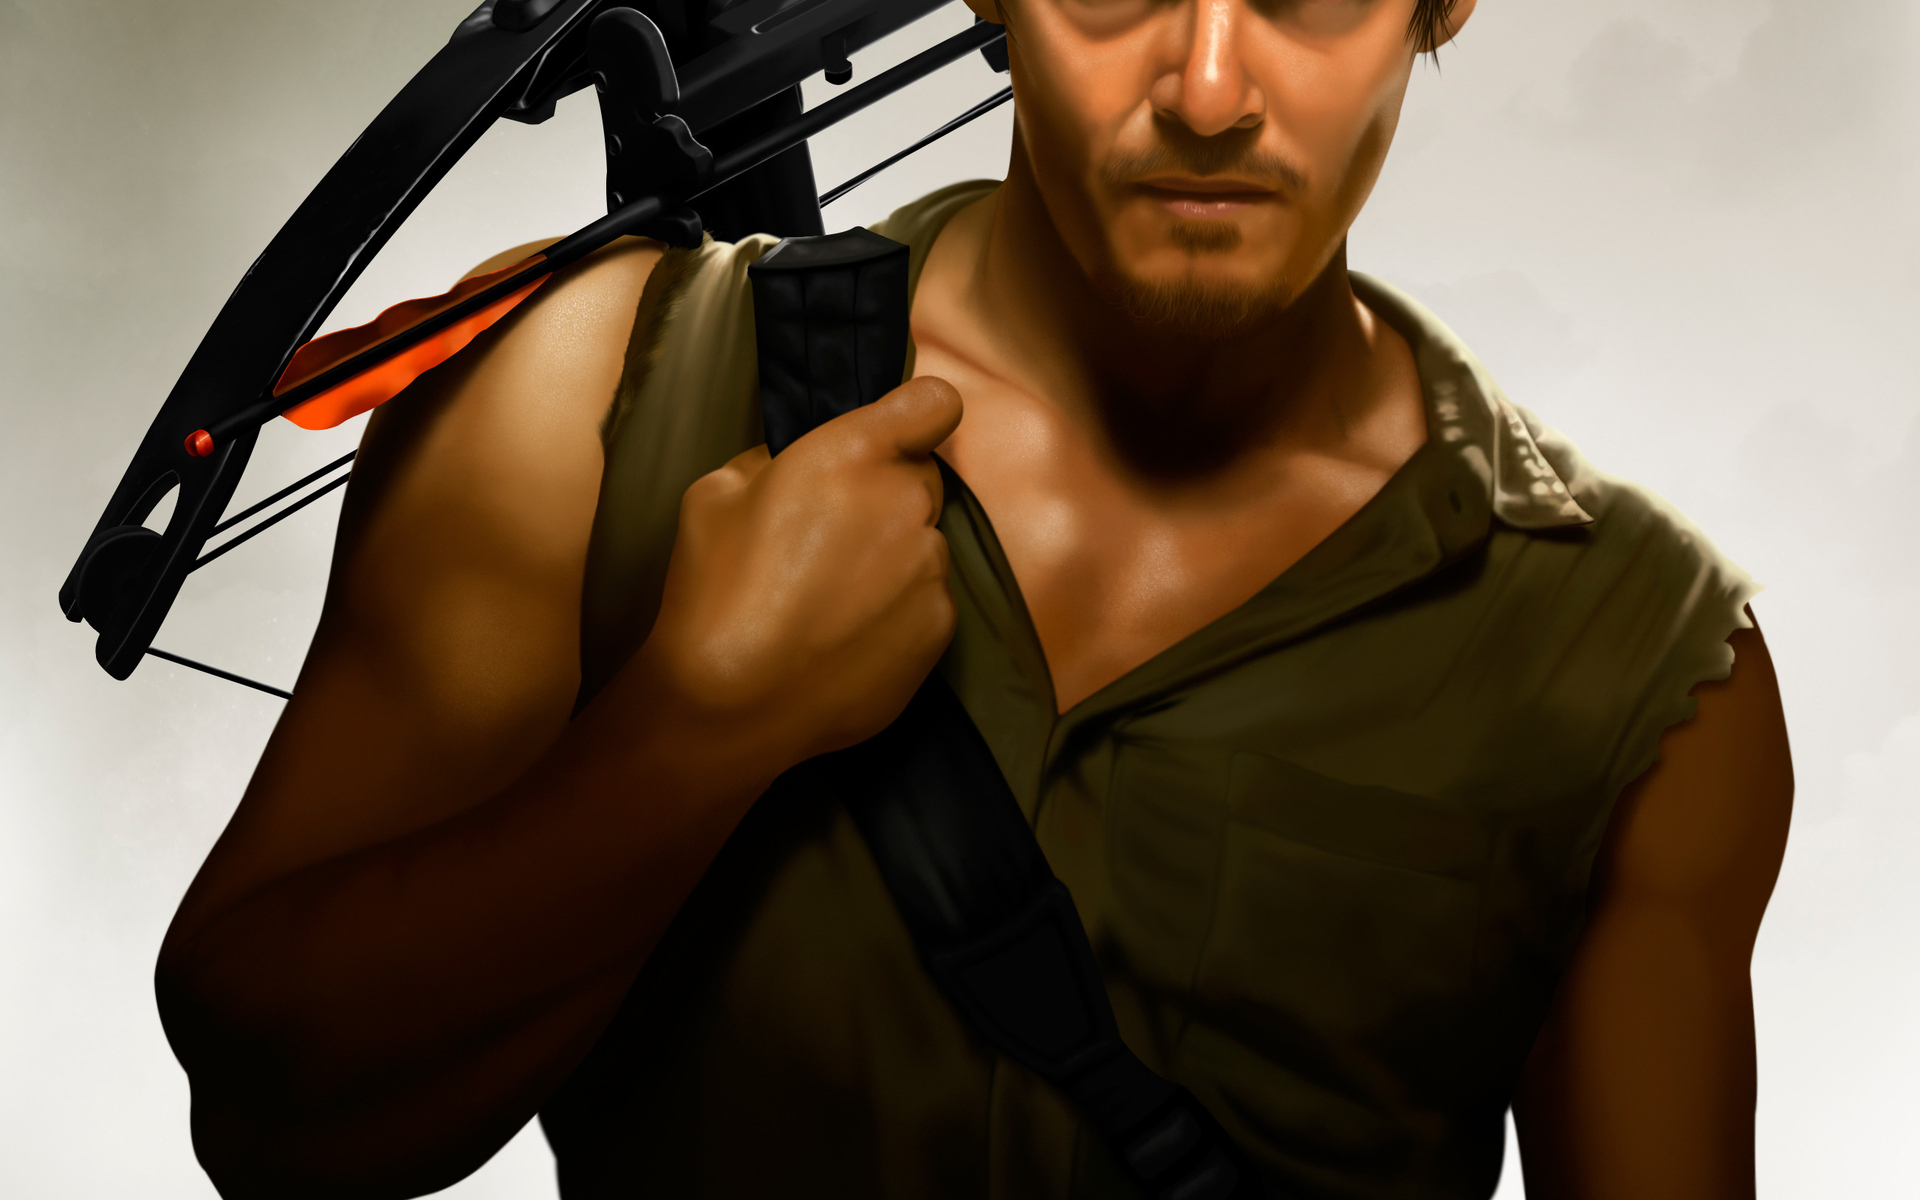 Daryl Dixon Wallpaper High Definition High Quality